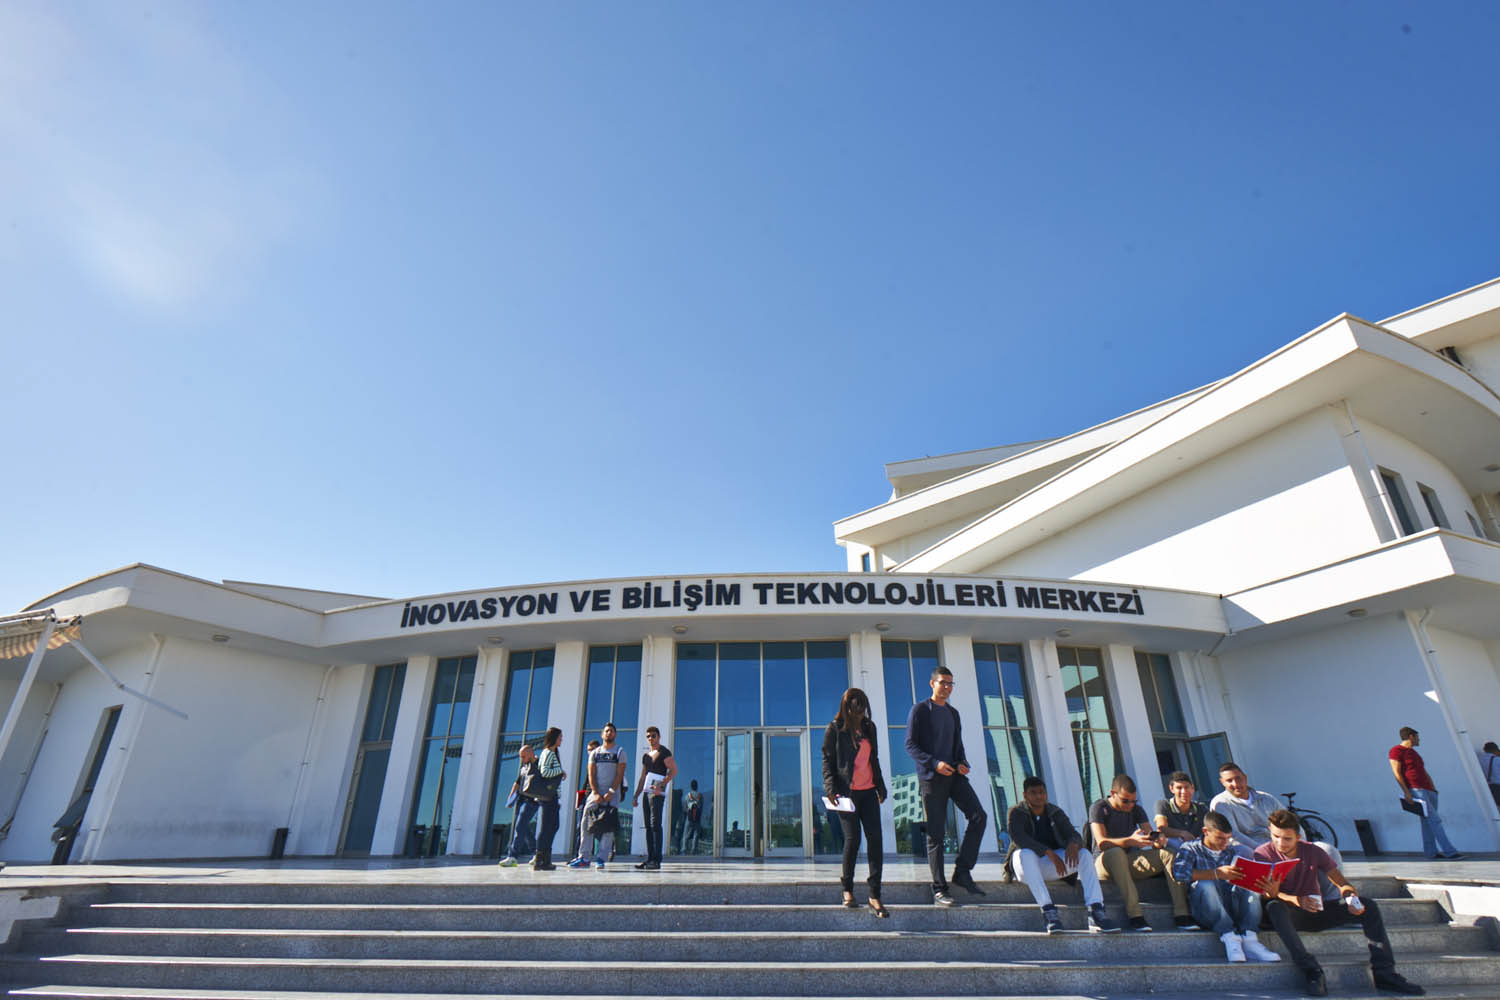 The Academic Rise of Near East University: 1st in TRNC, 13th amongst Turkish Universities, 4th amongst the private universities